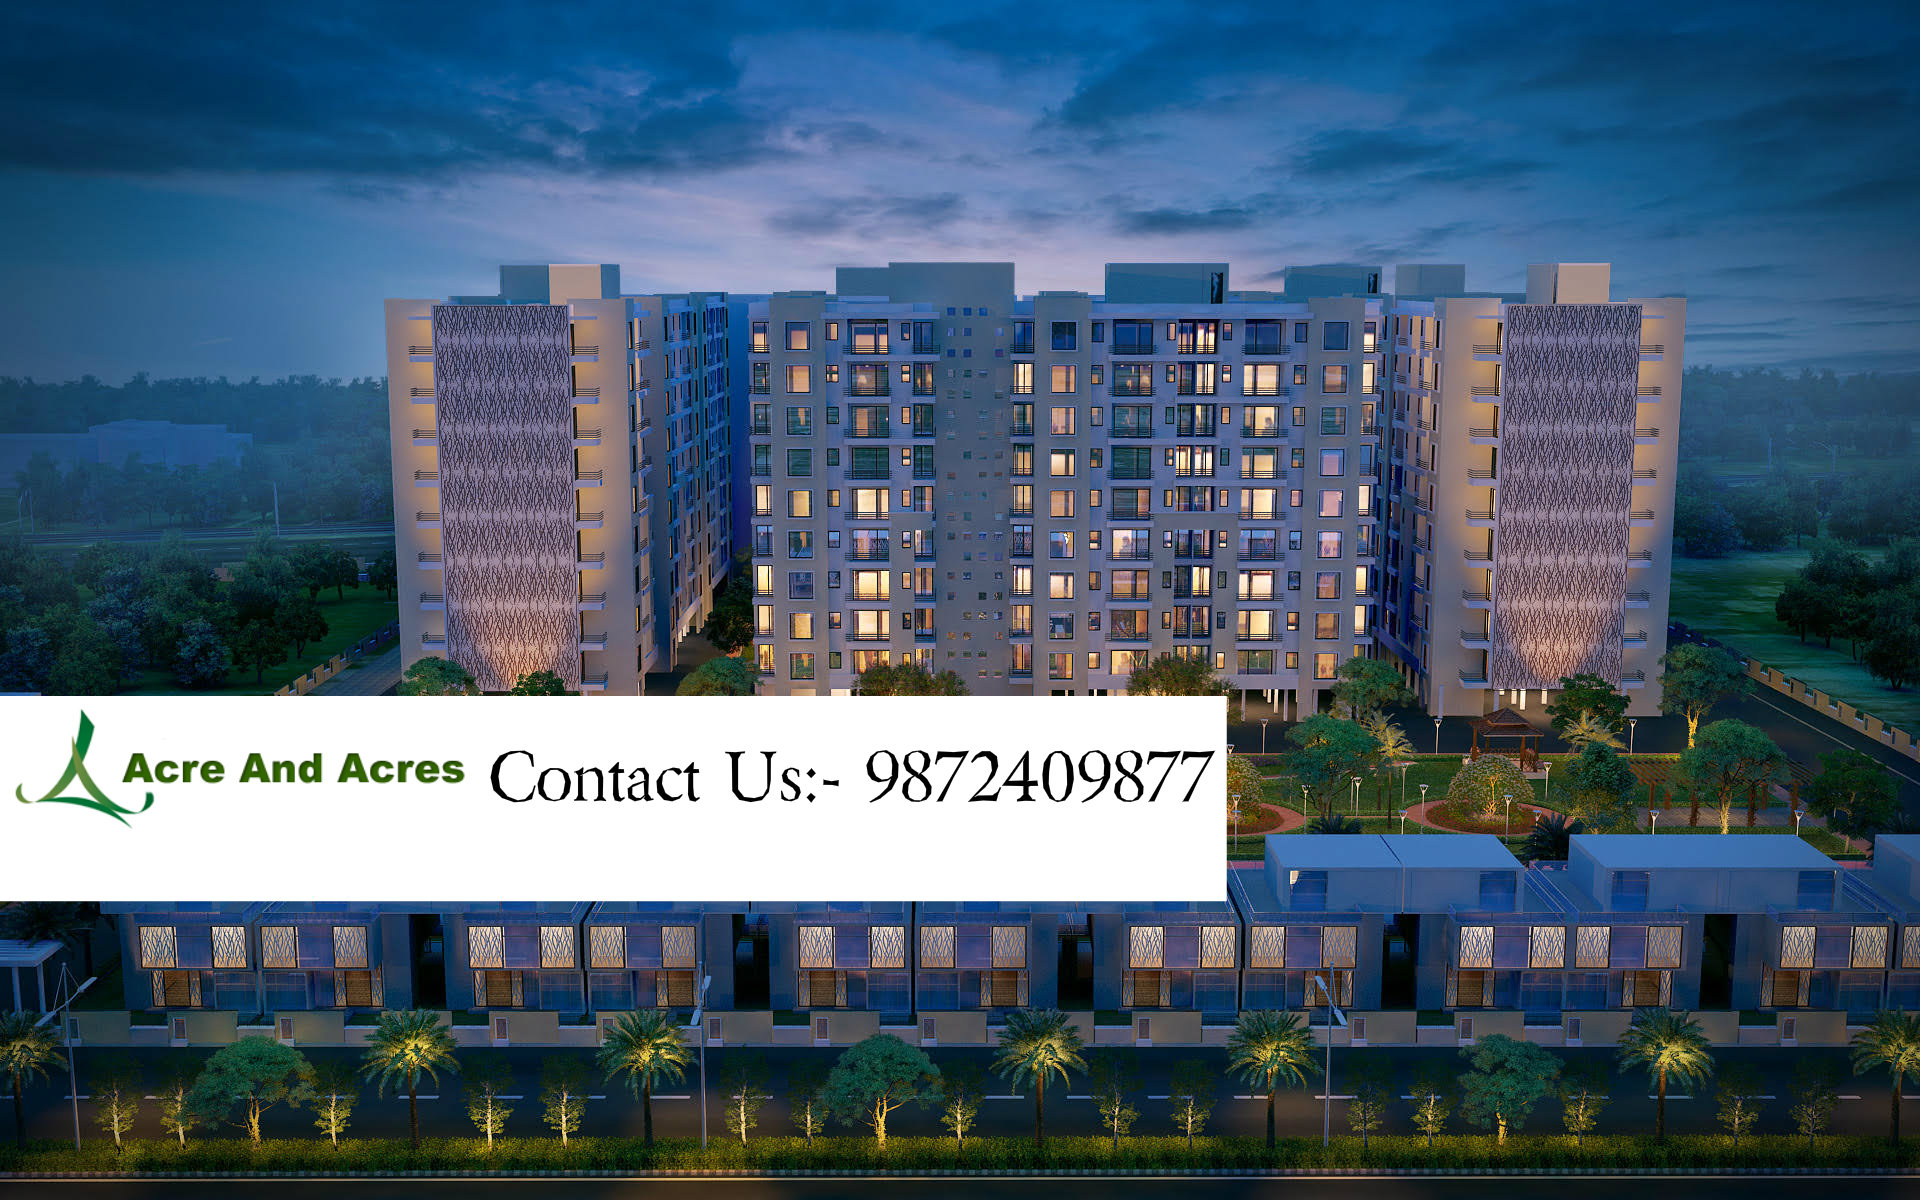 Acrenacres | 3/4 Bhk flats, apartments for sale in sushma Chandigarh Grande